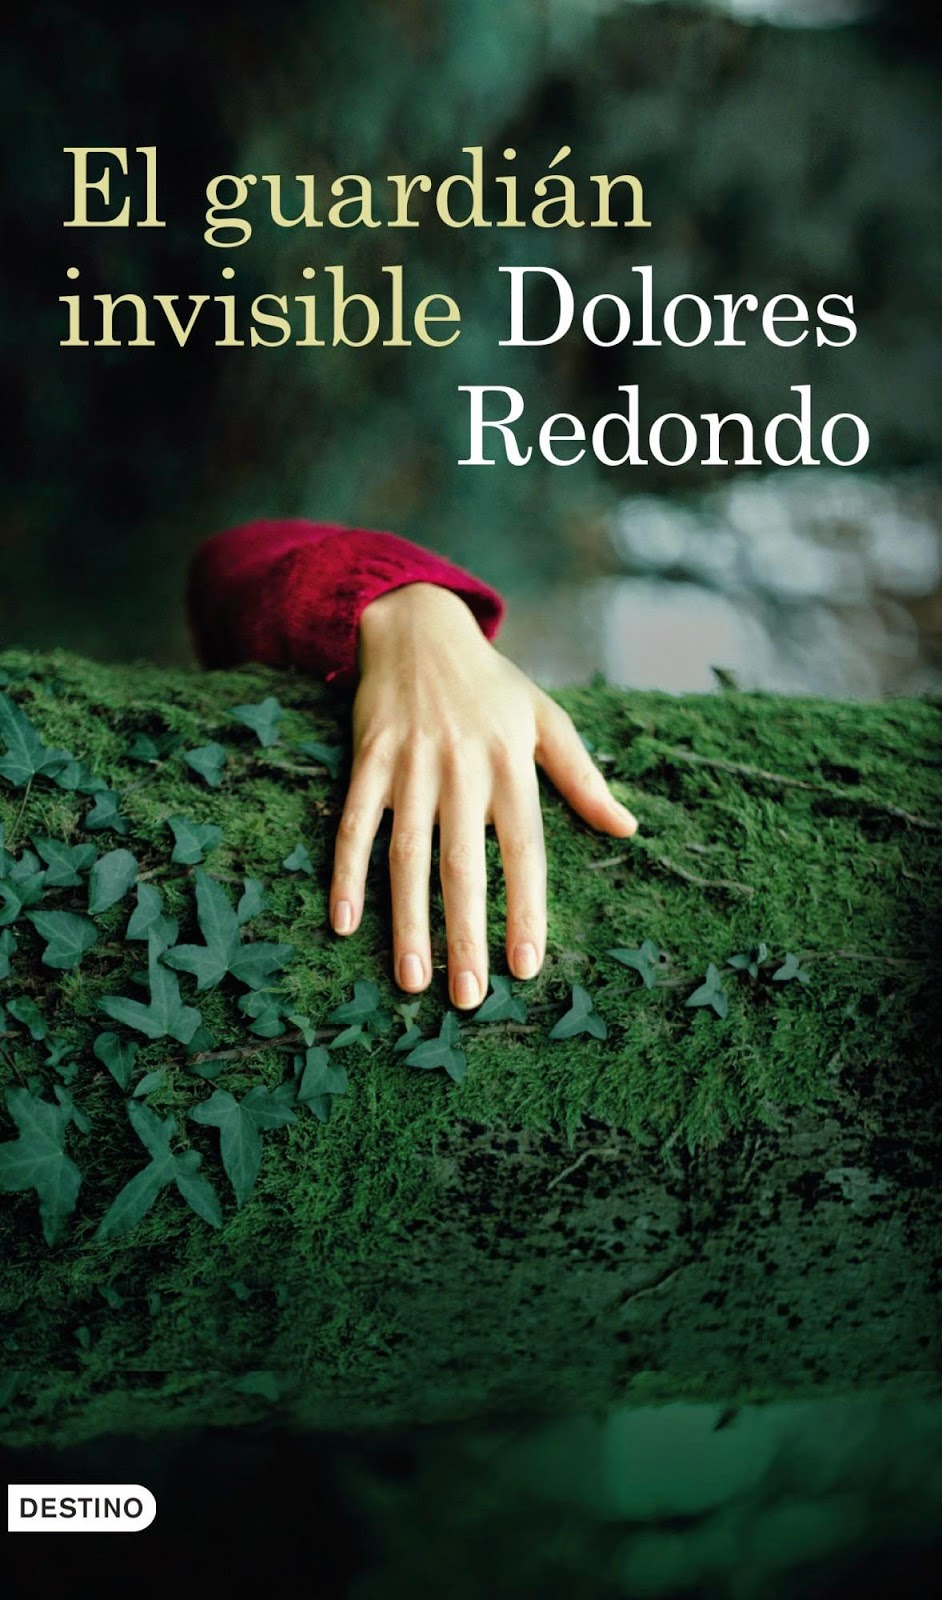 El guardián invisible - Dolores Redondo (2013)